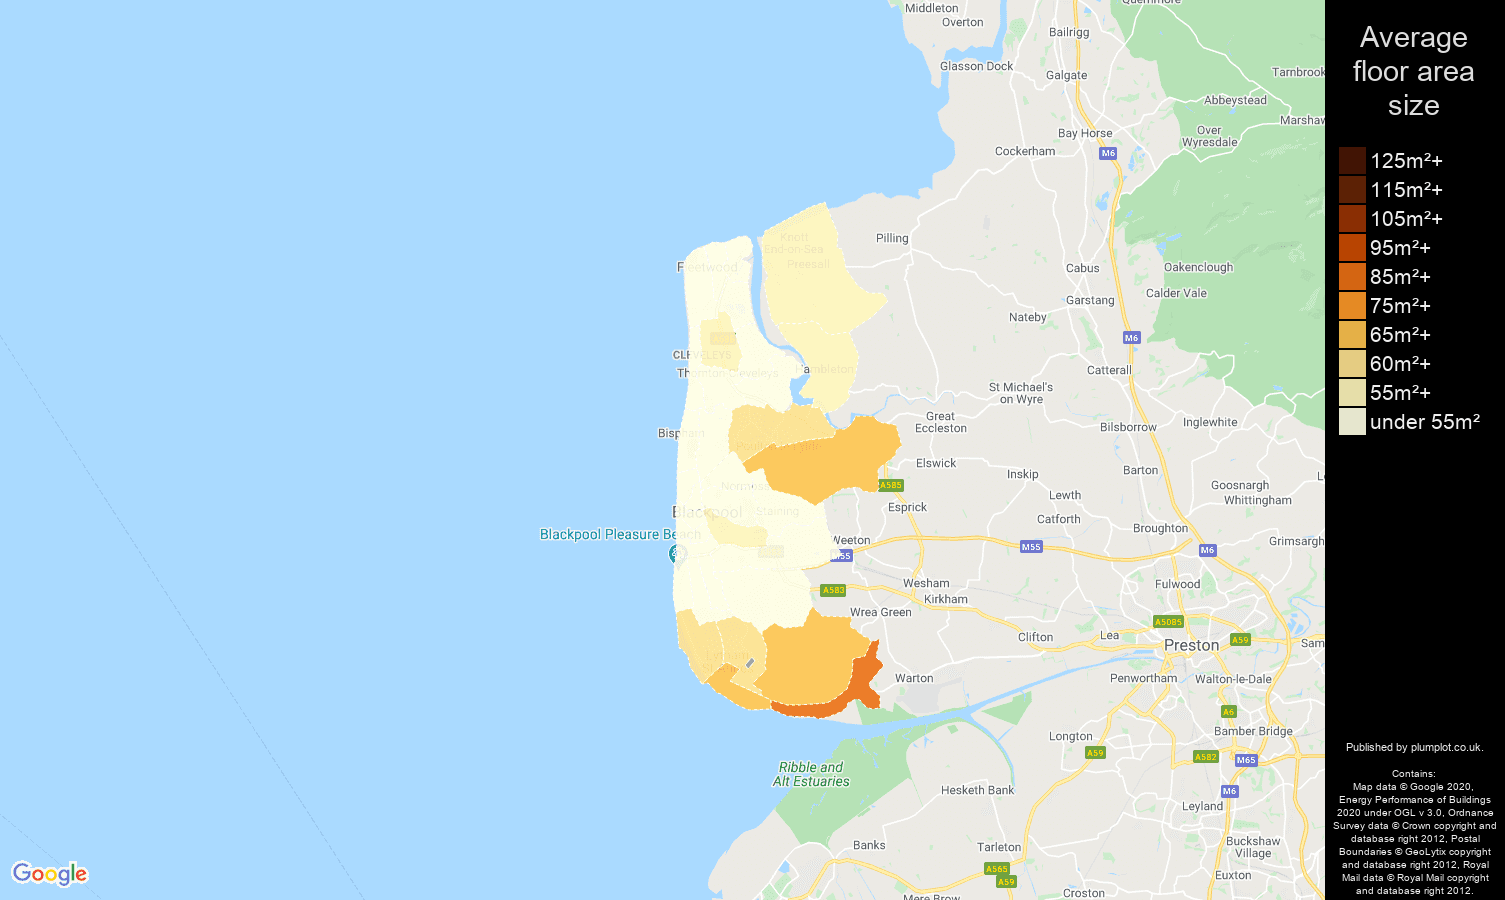 Blackpool map of average floor area size of flats